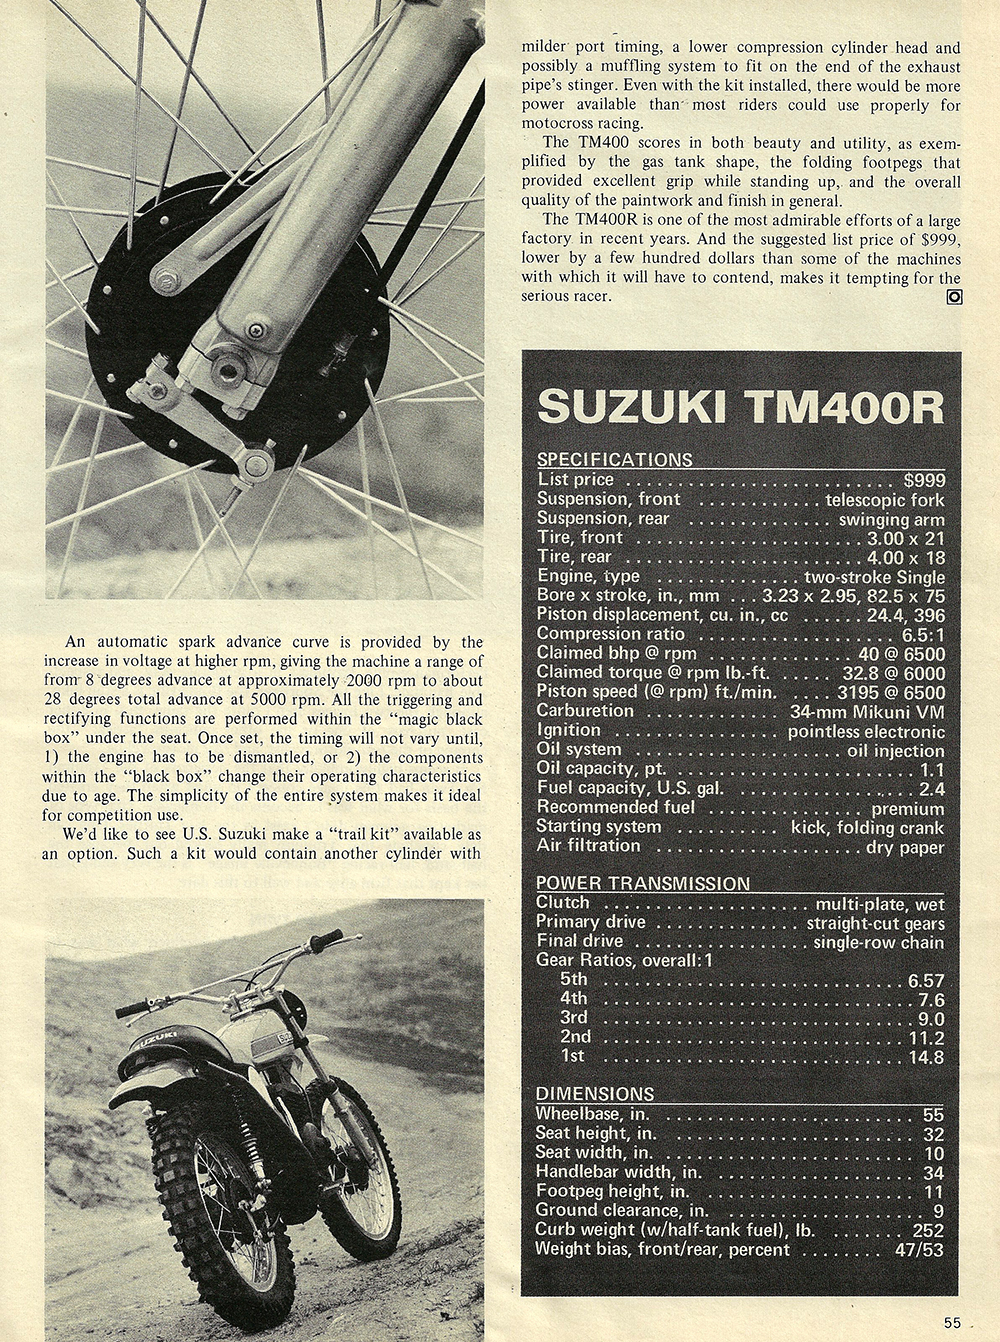 1971 Suzuki TM400R road test 05.jpg